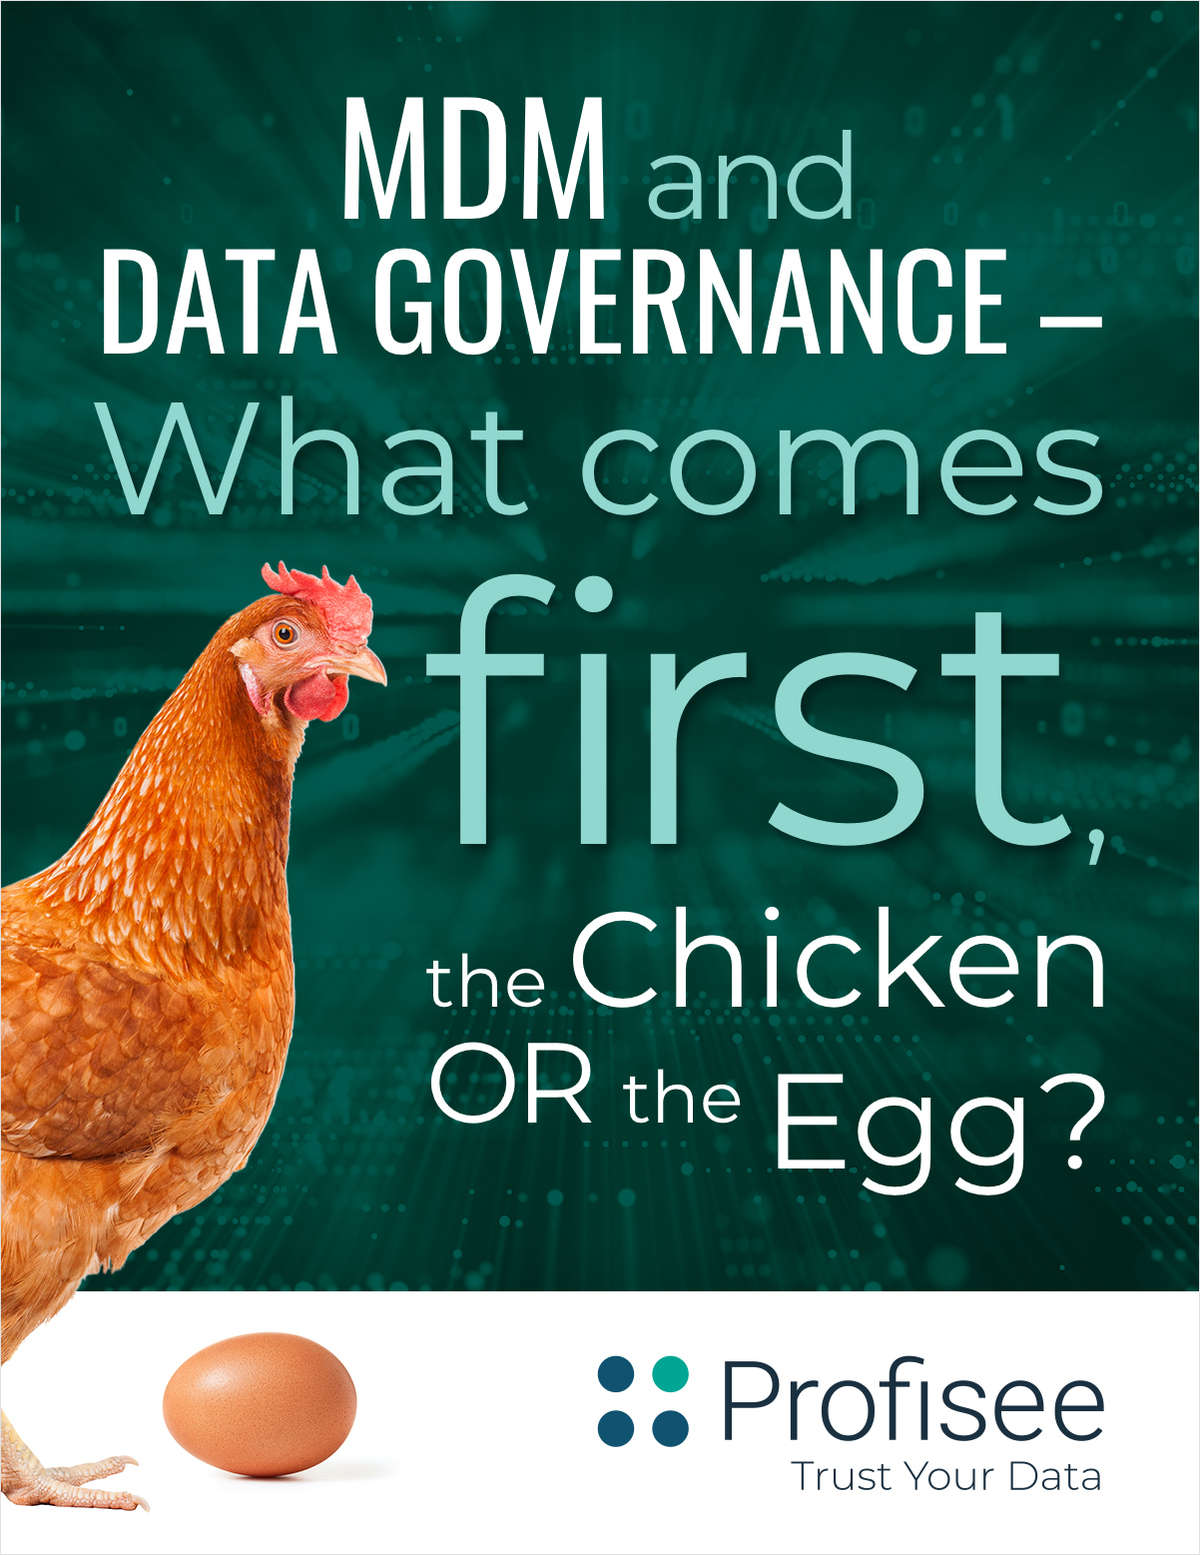 MDM and Data Governance: What Comes First, the Chicken or the Egg?